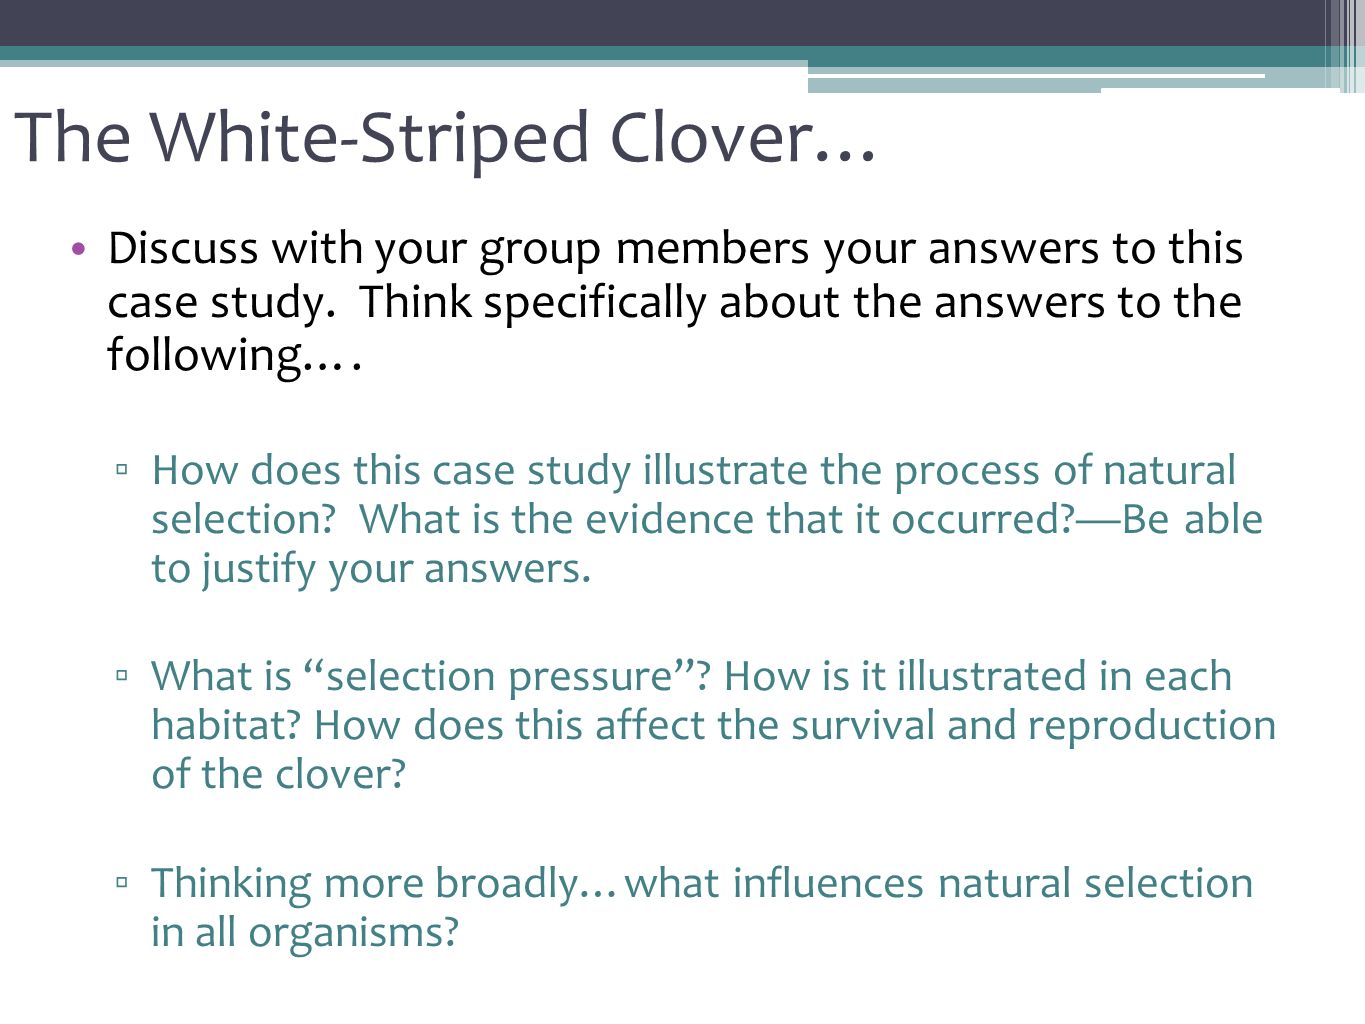 The White-Striped Clover… Discuss with your group members your answers to this case study.